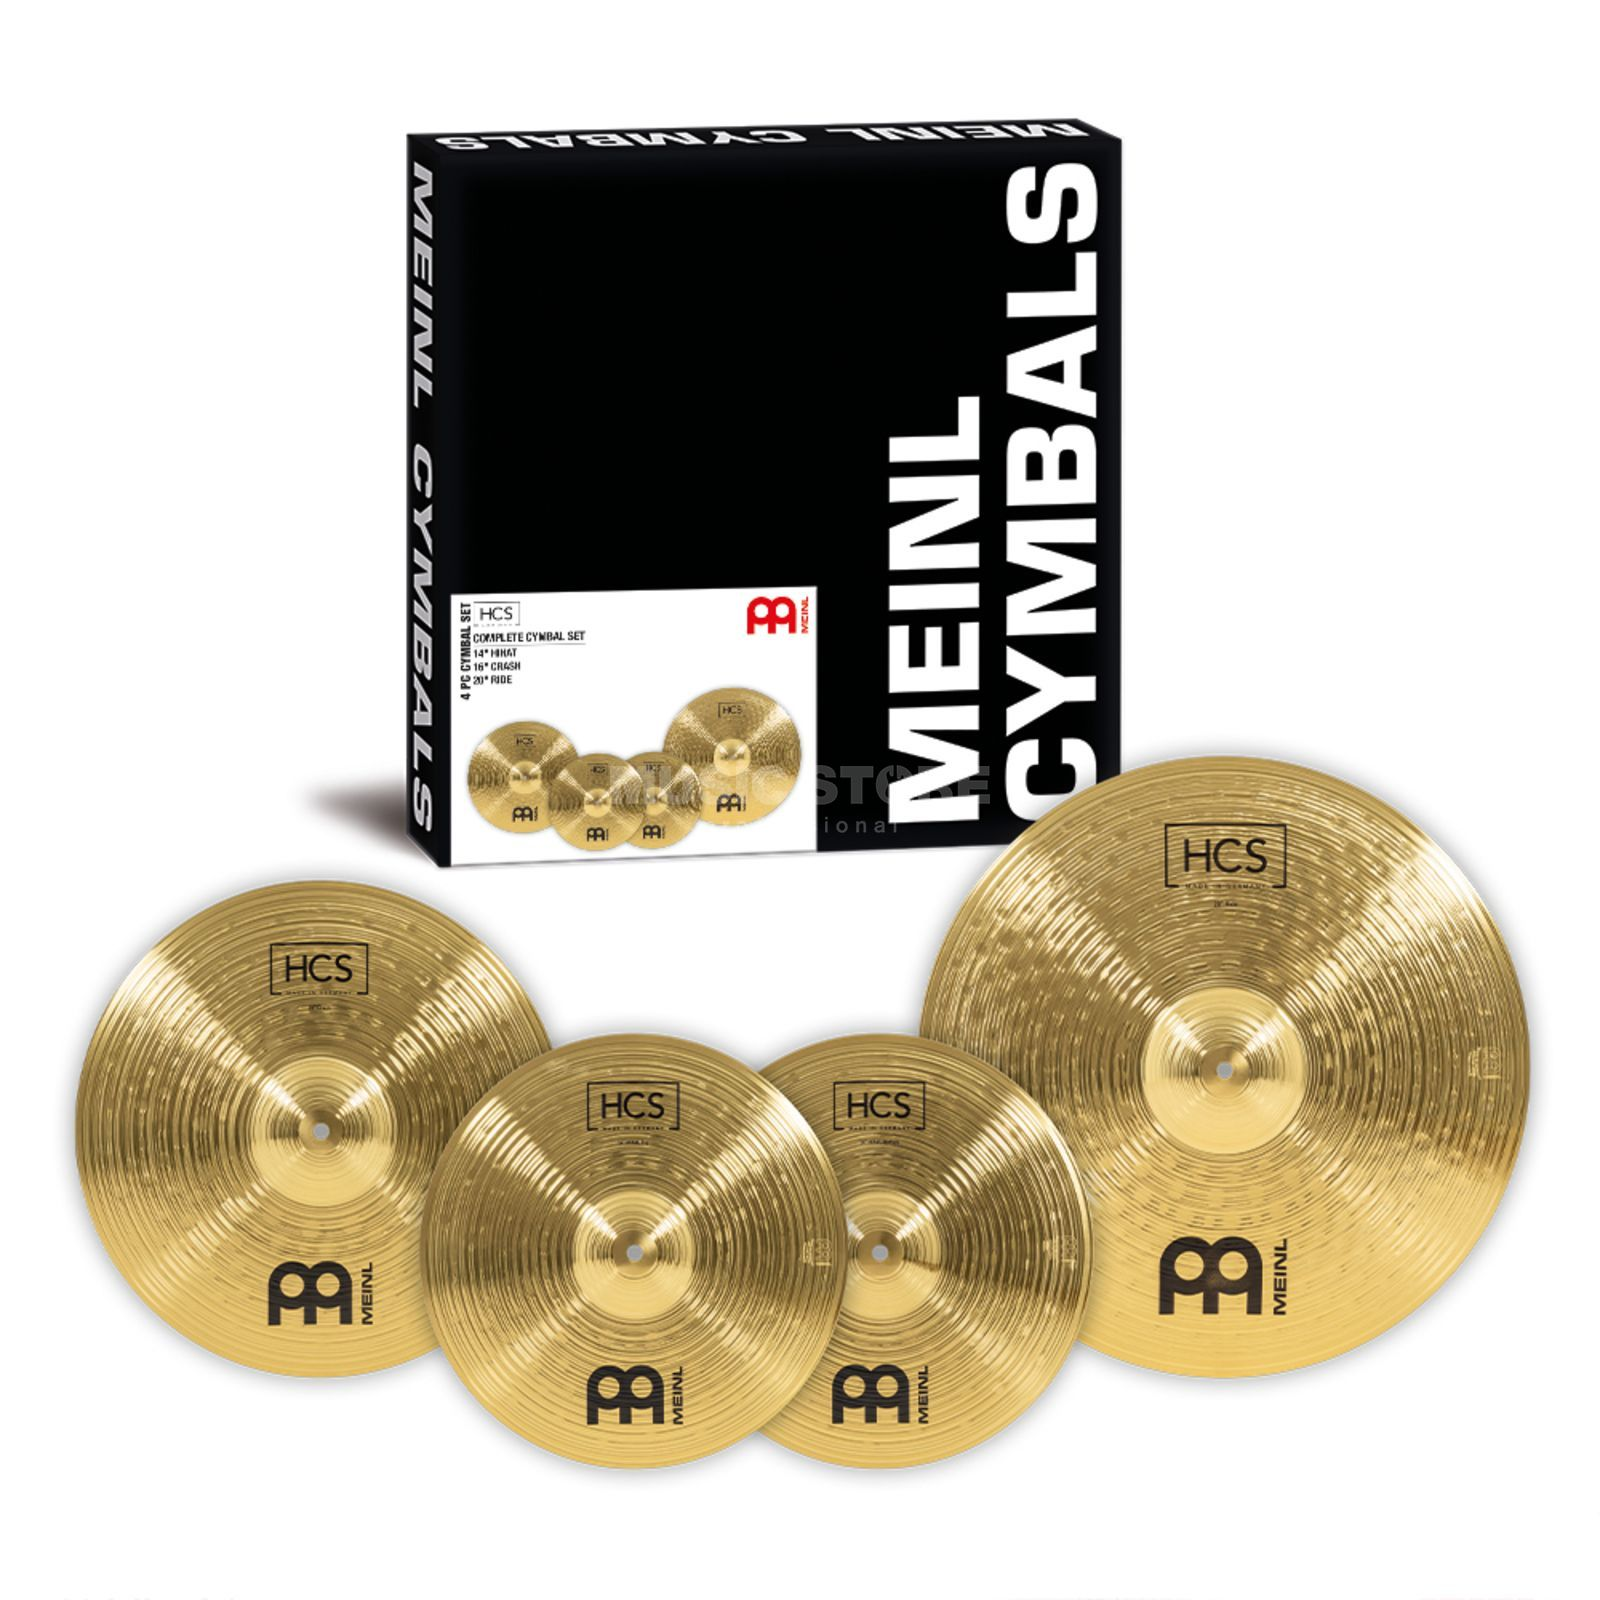 "Meinl HCS Cymbal Set 20"" Ride,16"" Crash,14"" HiHat Изображение товара"